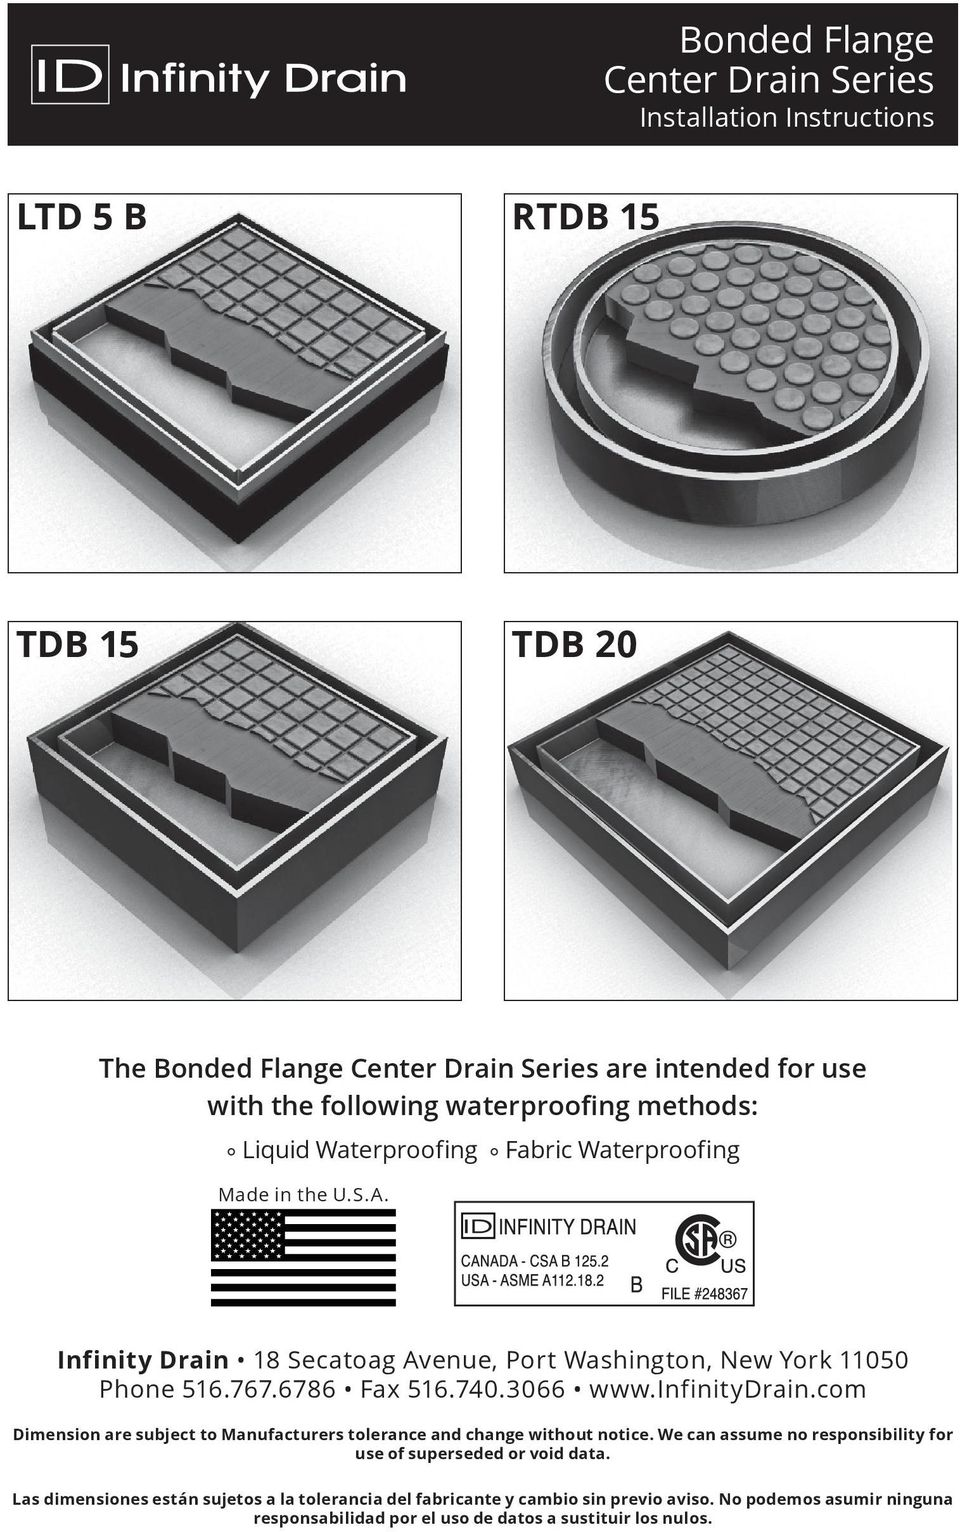 6786 Fax 516.740.3066 www.infinitydrain.com Dimension are subject to Manufacturers tolerance and change without notice.